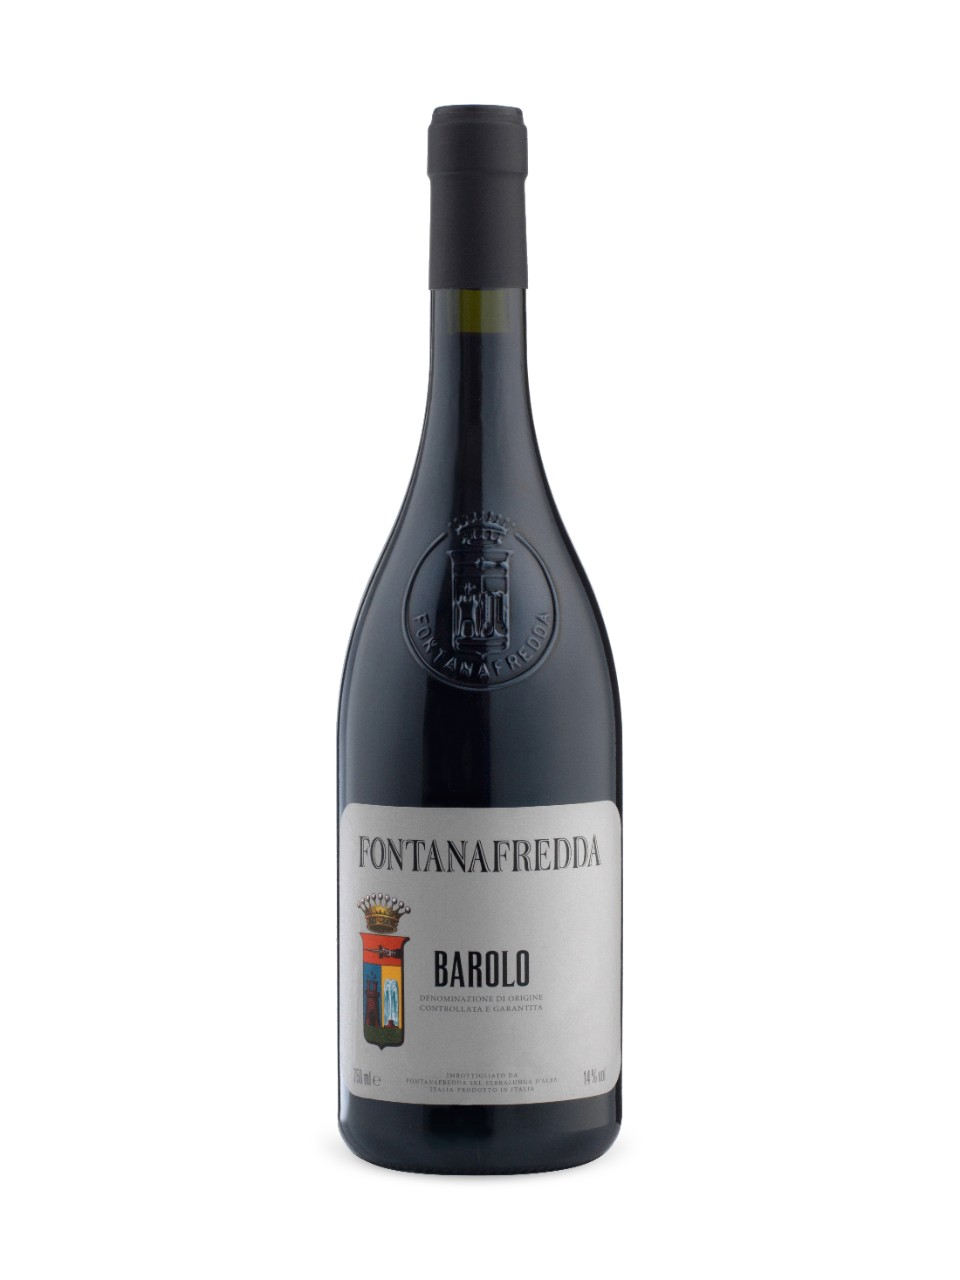 Fontanafredda's value priced Barolo ($29.95 @ LCBO)